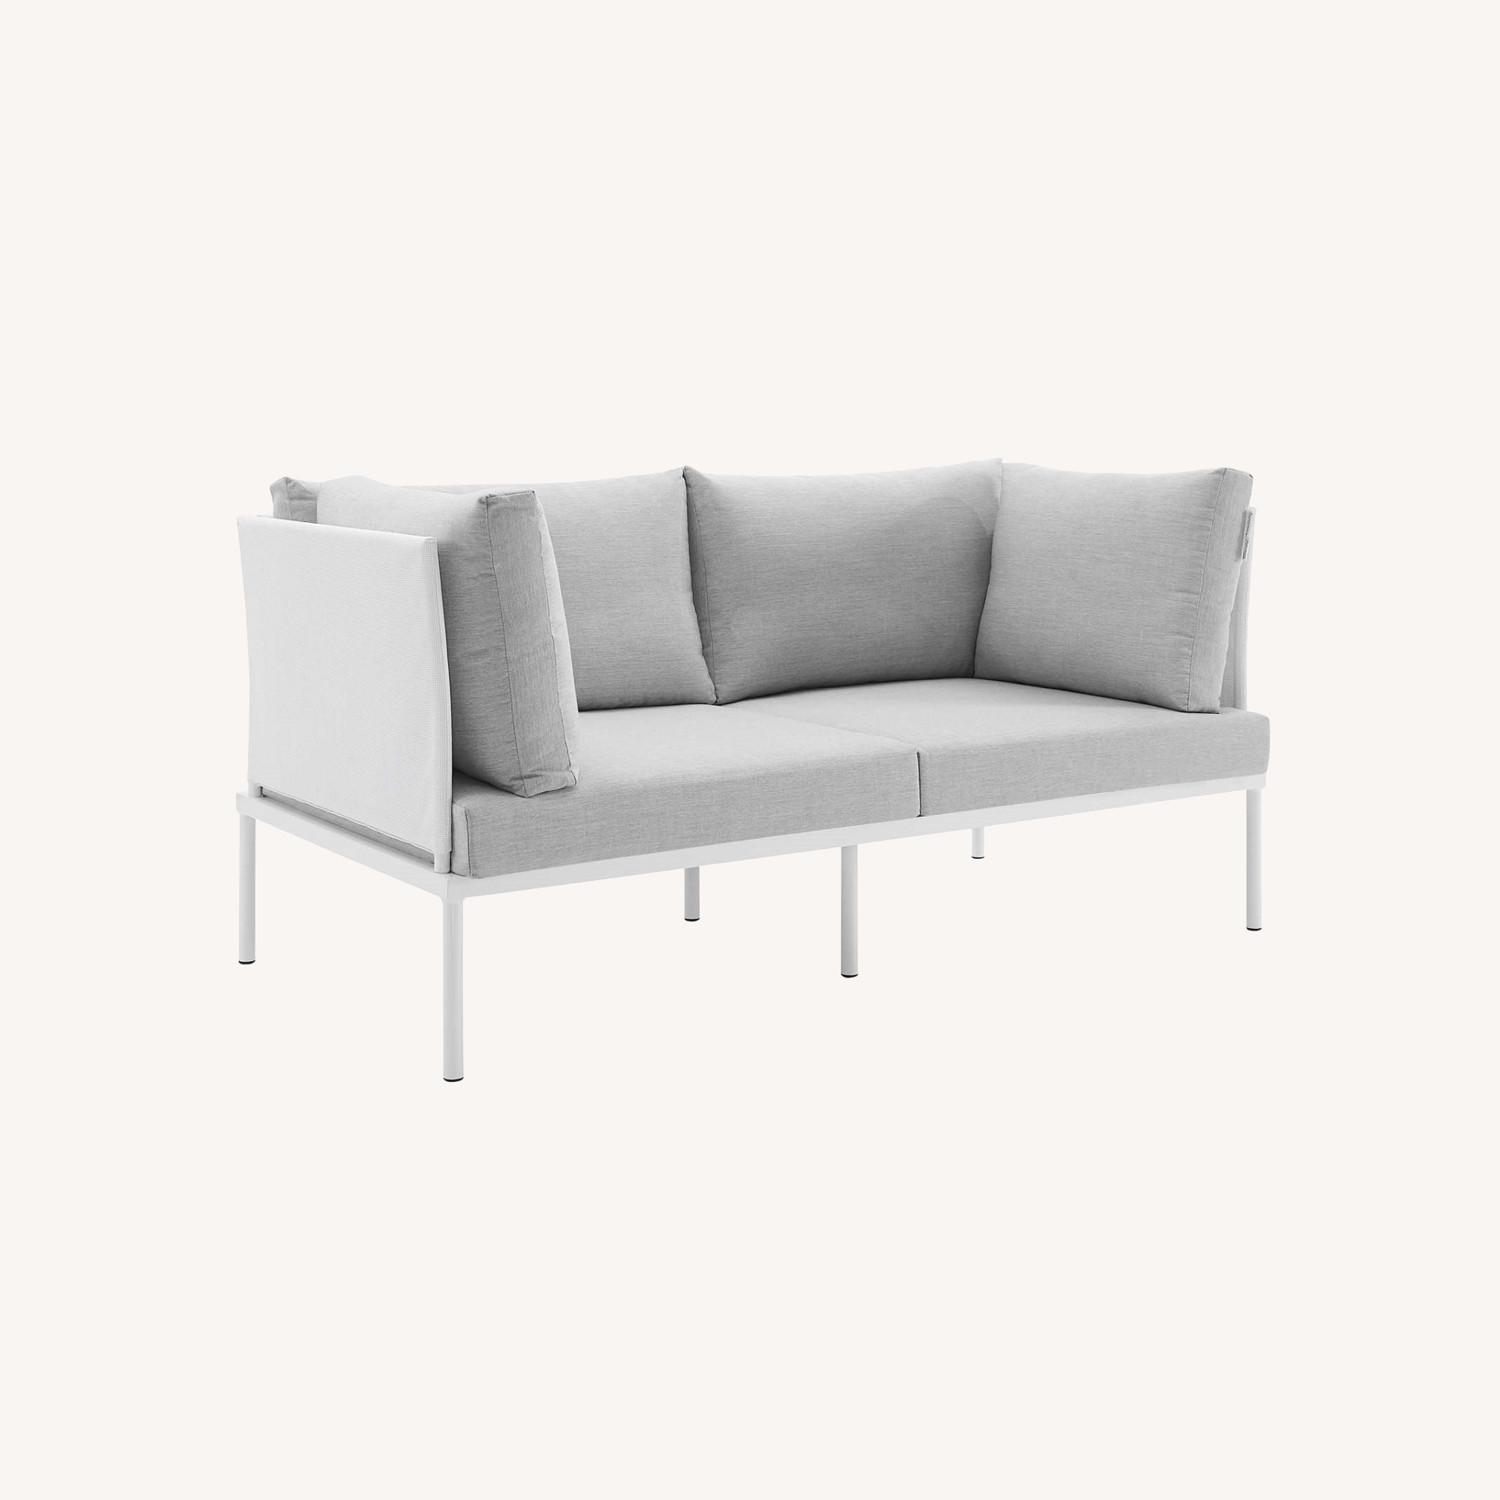 Outdoor Loveseat In White Frame & Gray Cushion - image-5